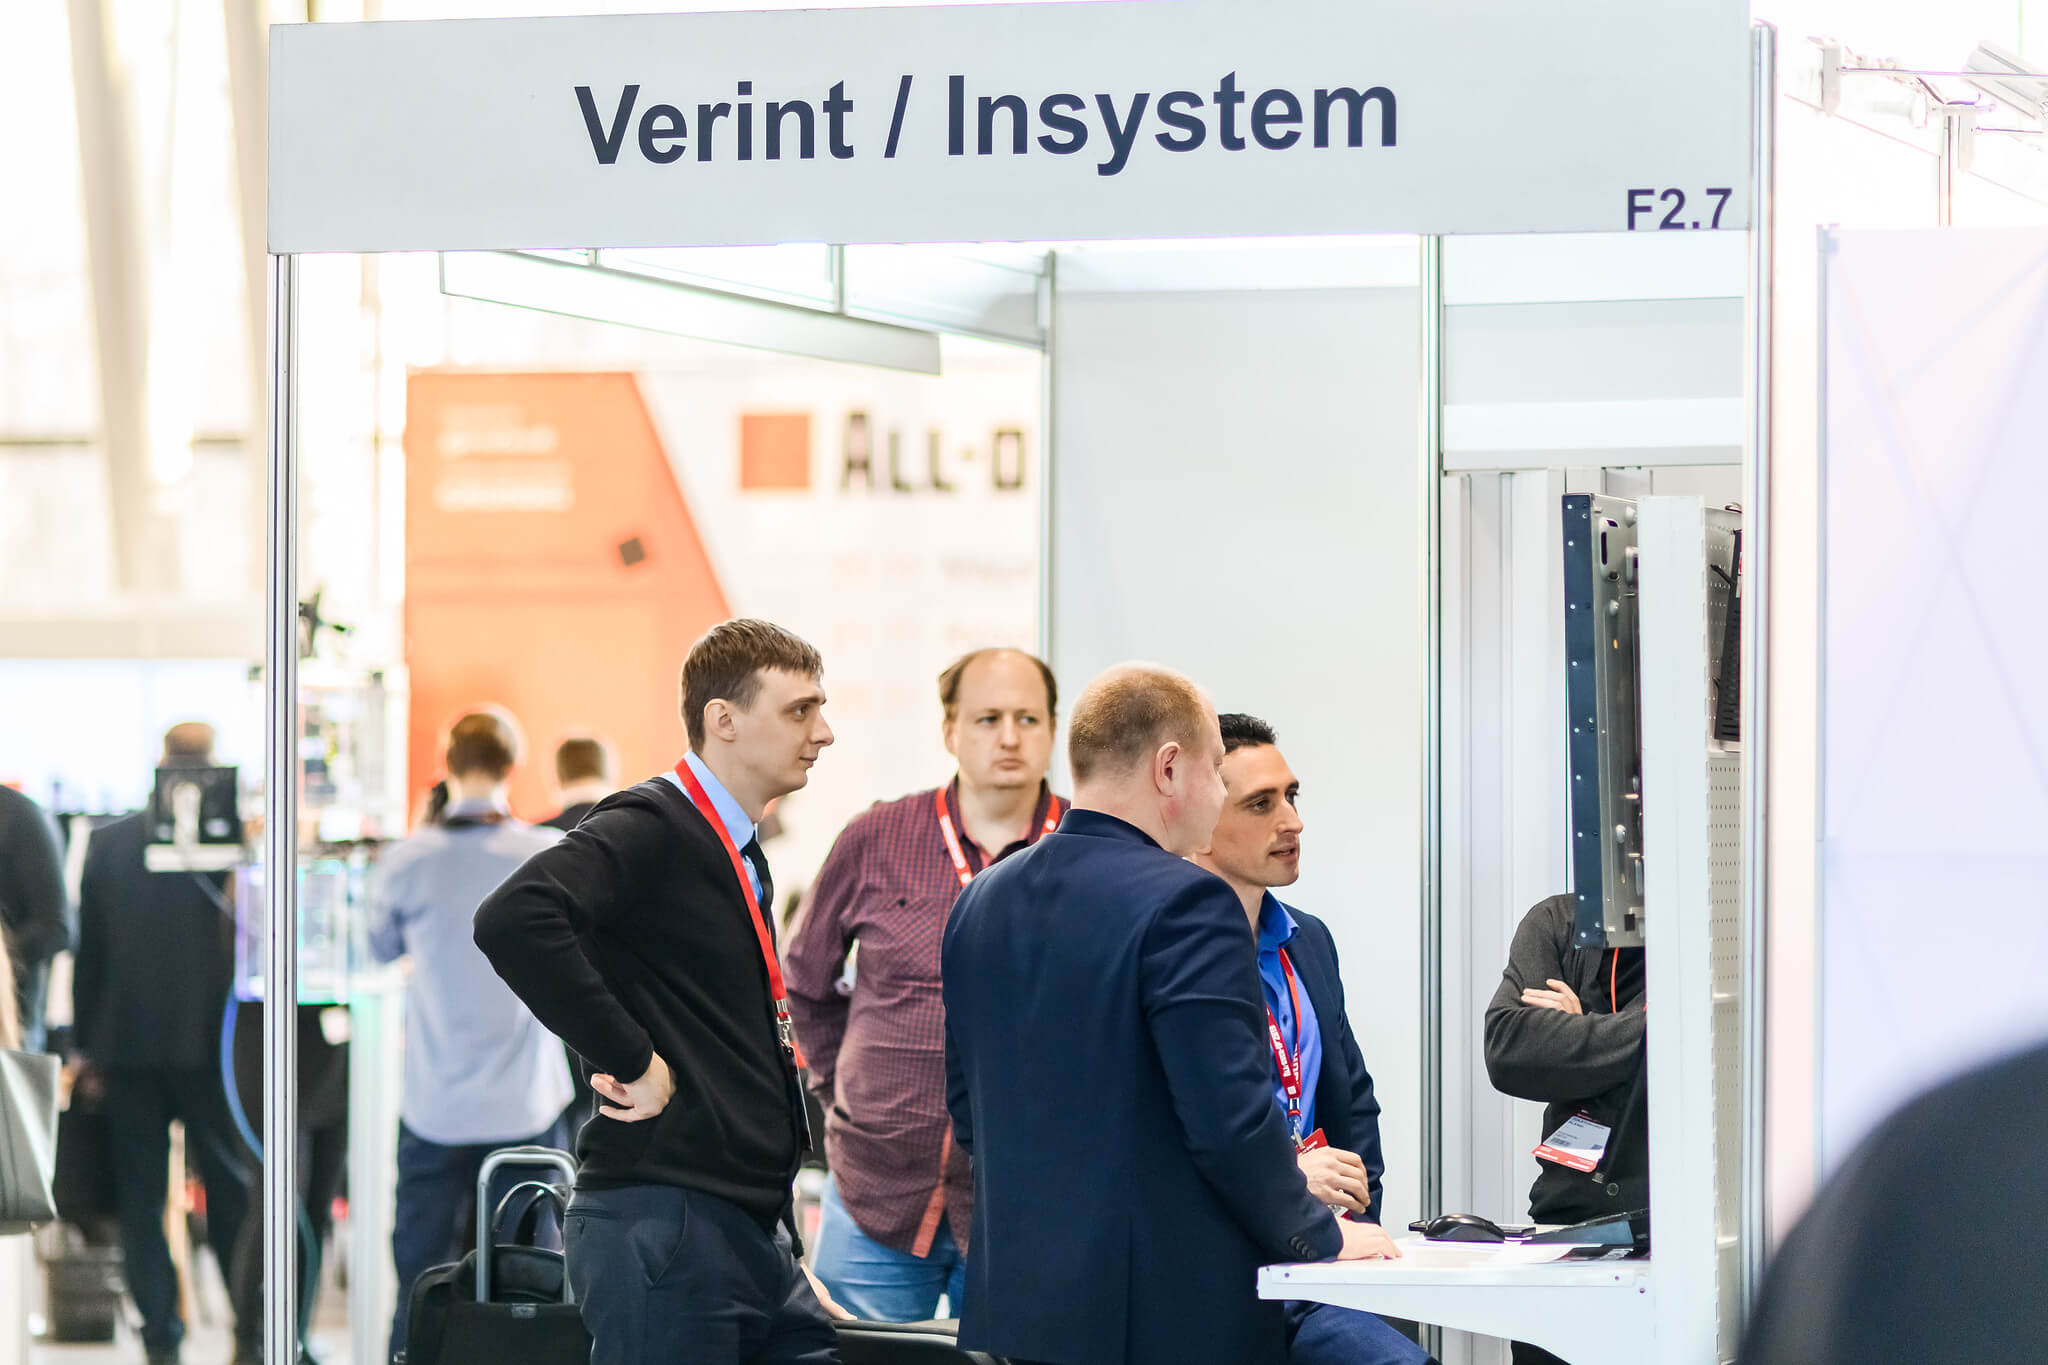 Verint Systems: An Exhibition That Is Not